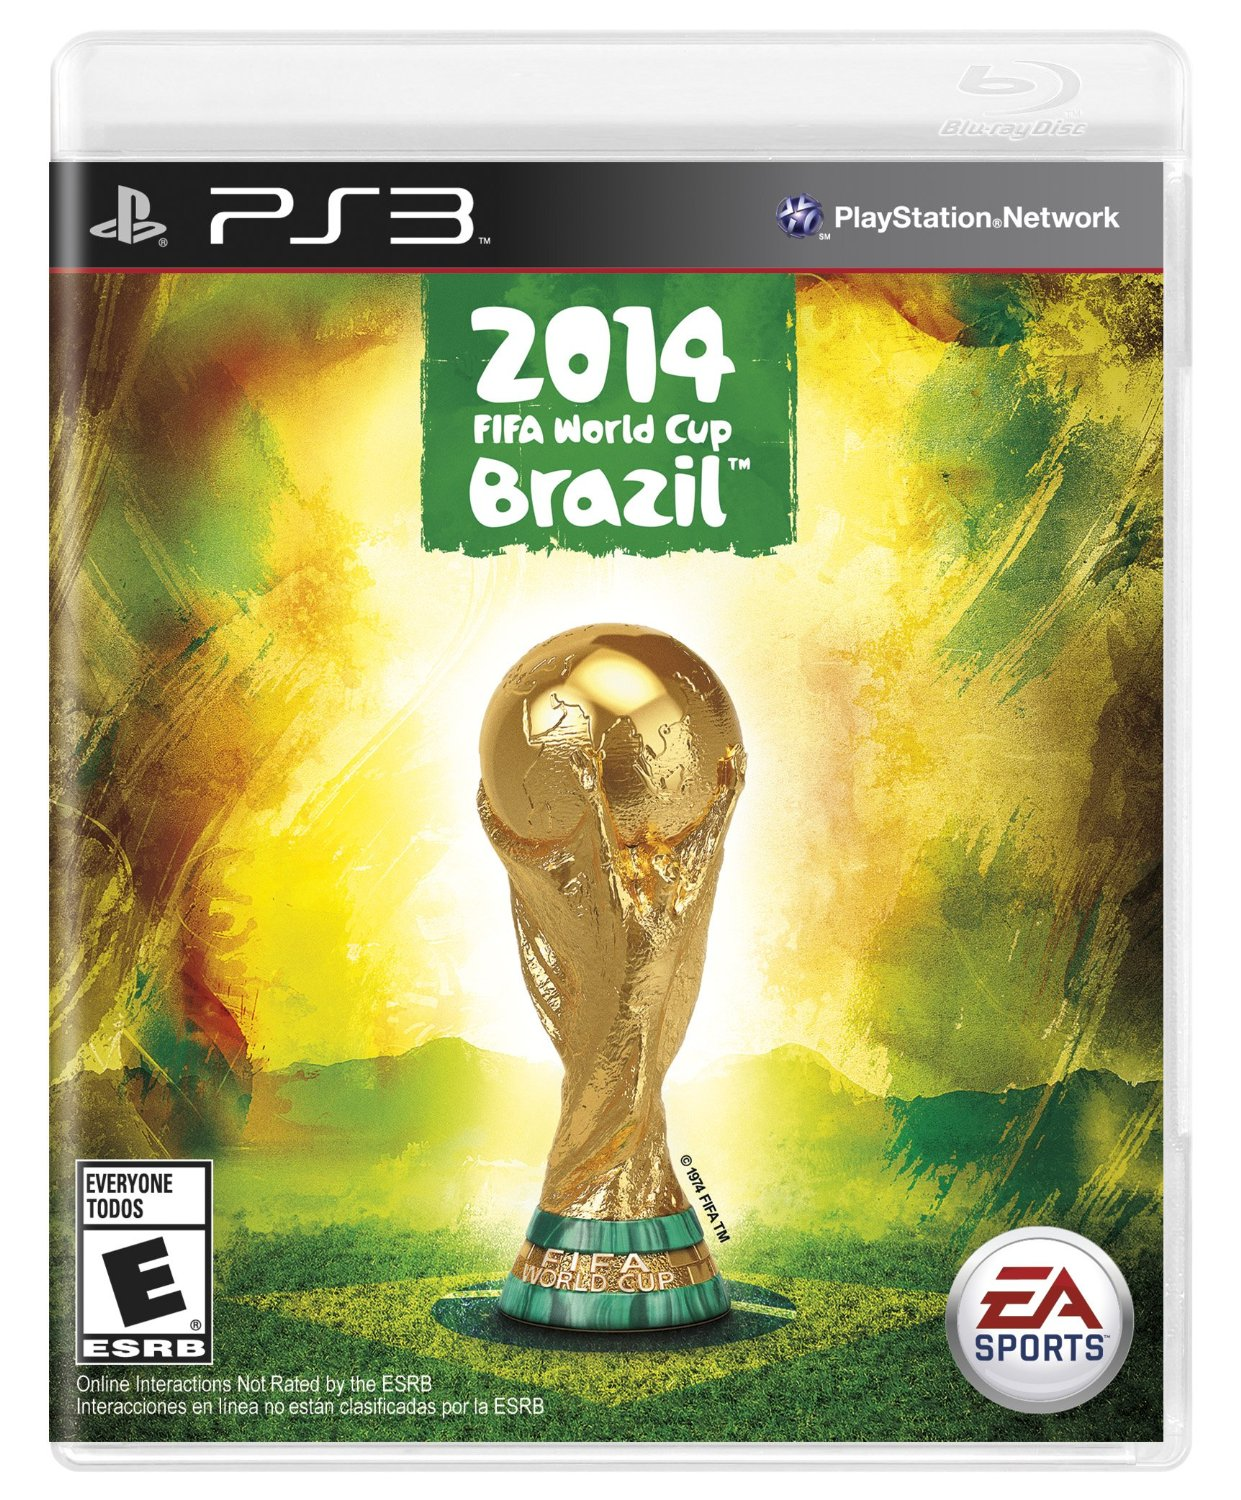 EA Sports 2014 FIFA World Cup Brazil for PS3 US